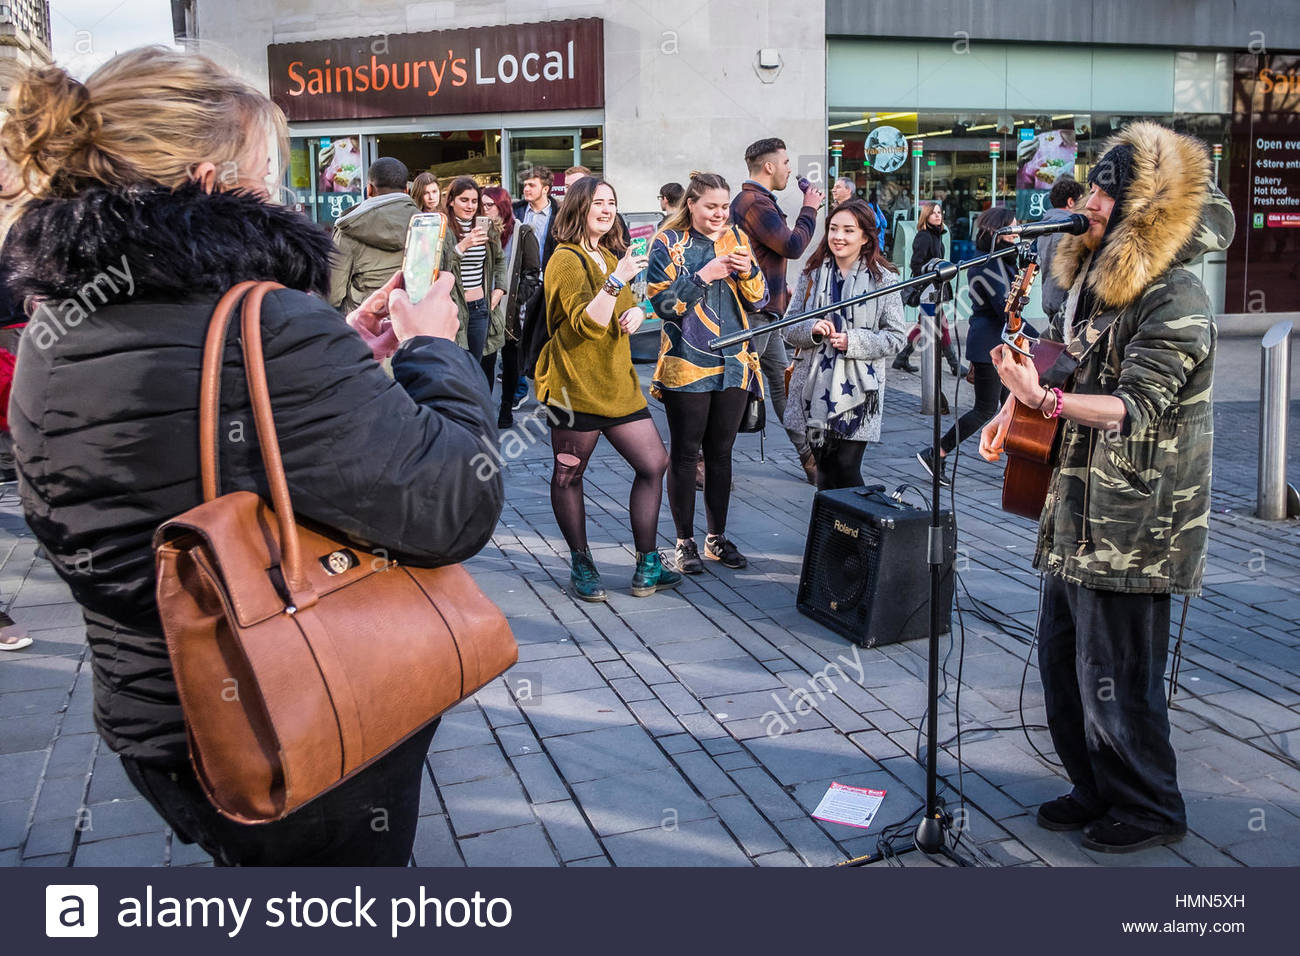 Bristol, UK - 04 February 2017:  Singer performs protest songs in front of young fans taking photos in the city - Stock Image